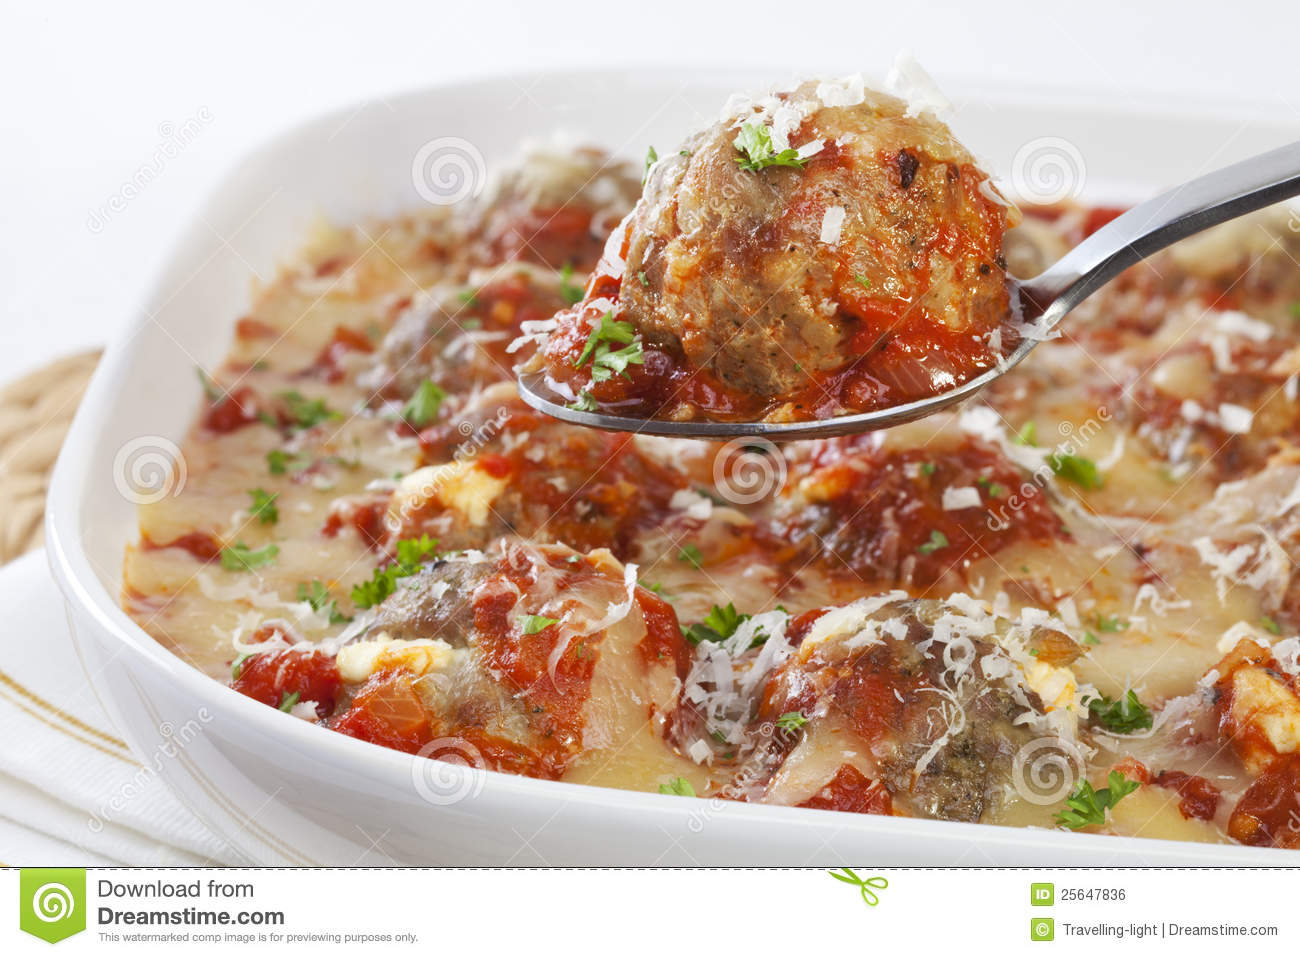 Turkey Meatballs with Tomato Sauce and Cheese